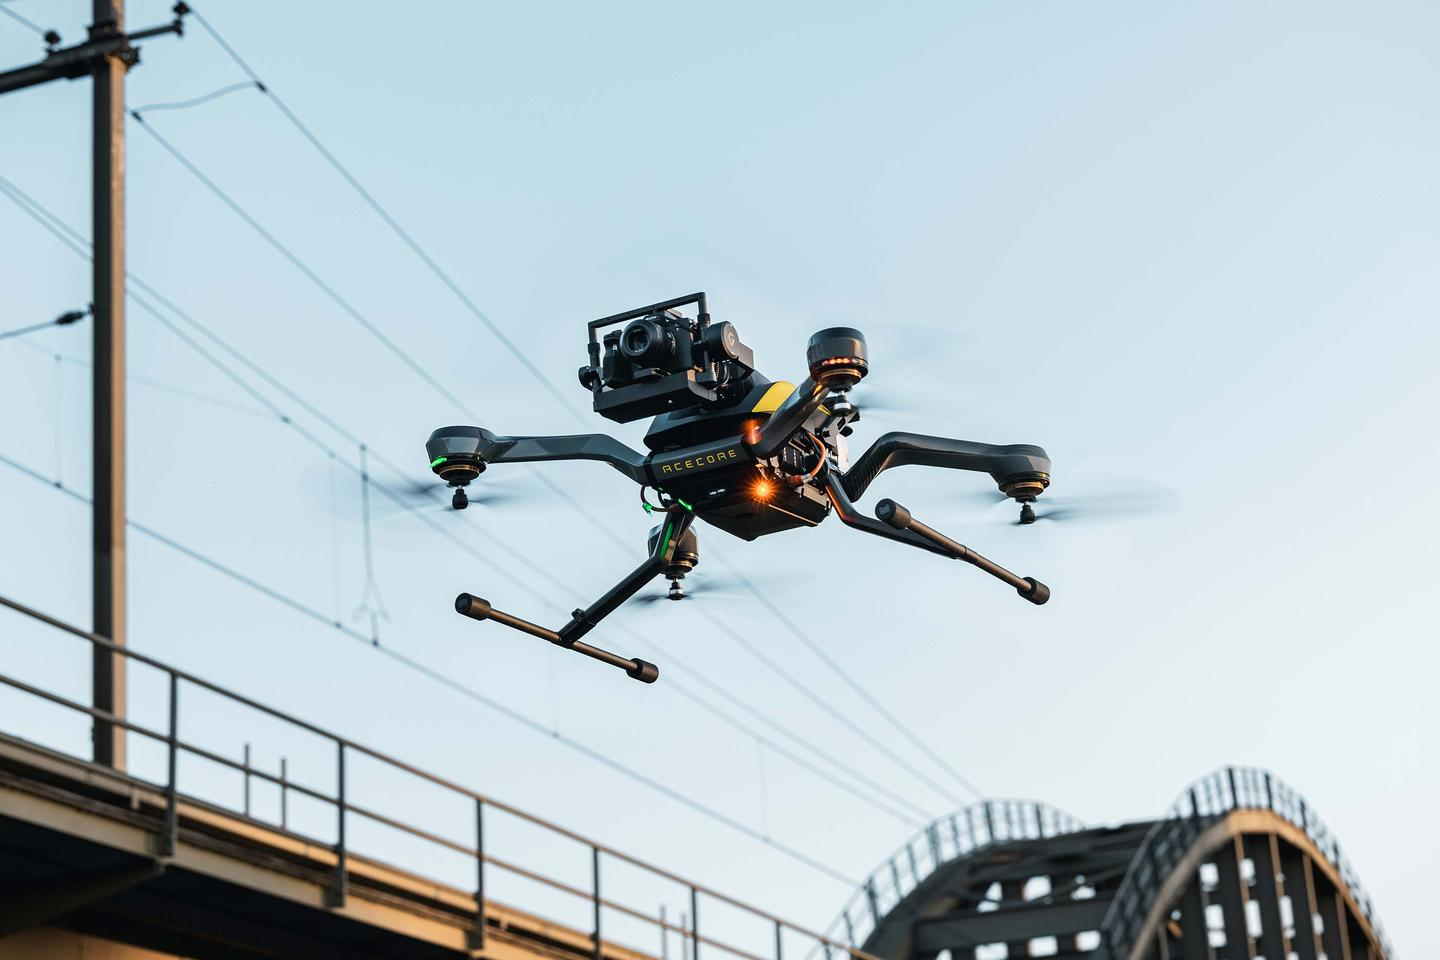 The Zoe Zetona industrial drone can be had in quadcopter or octocopter configurations